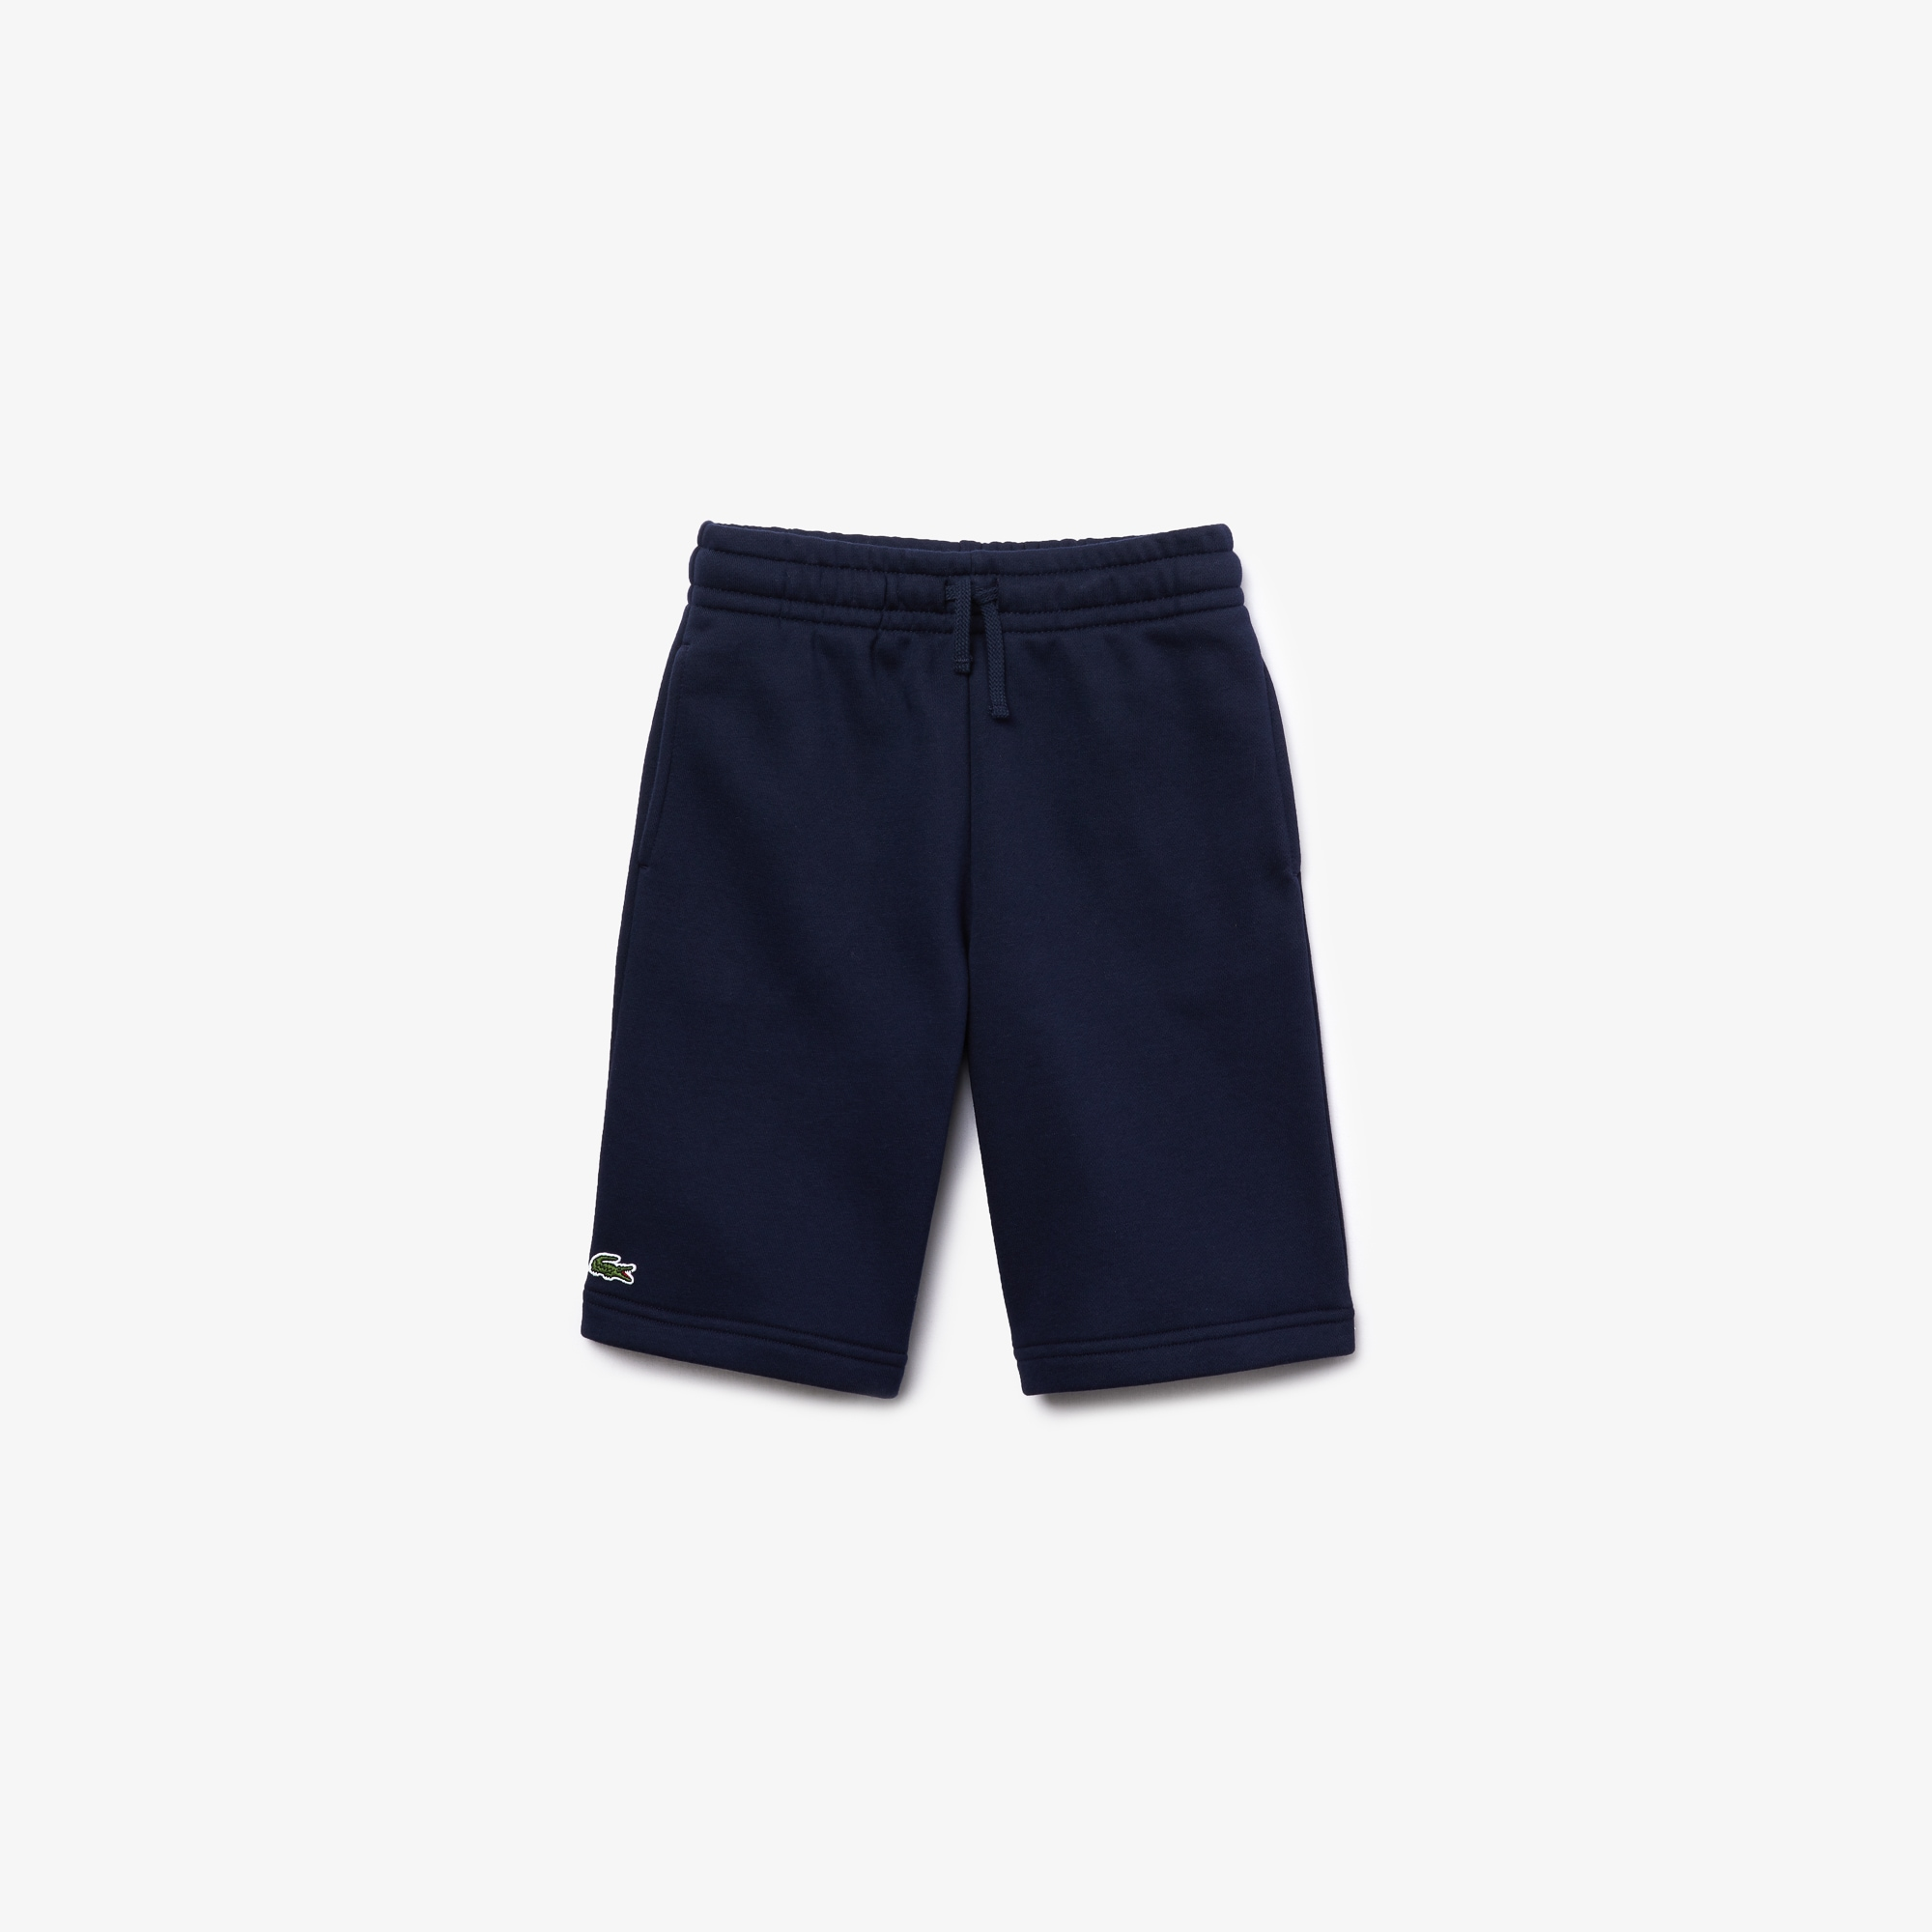 585b9e0c89ac19 Boys  Lacoste SPORT Tennis Cotton Fleece Shorts